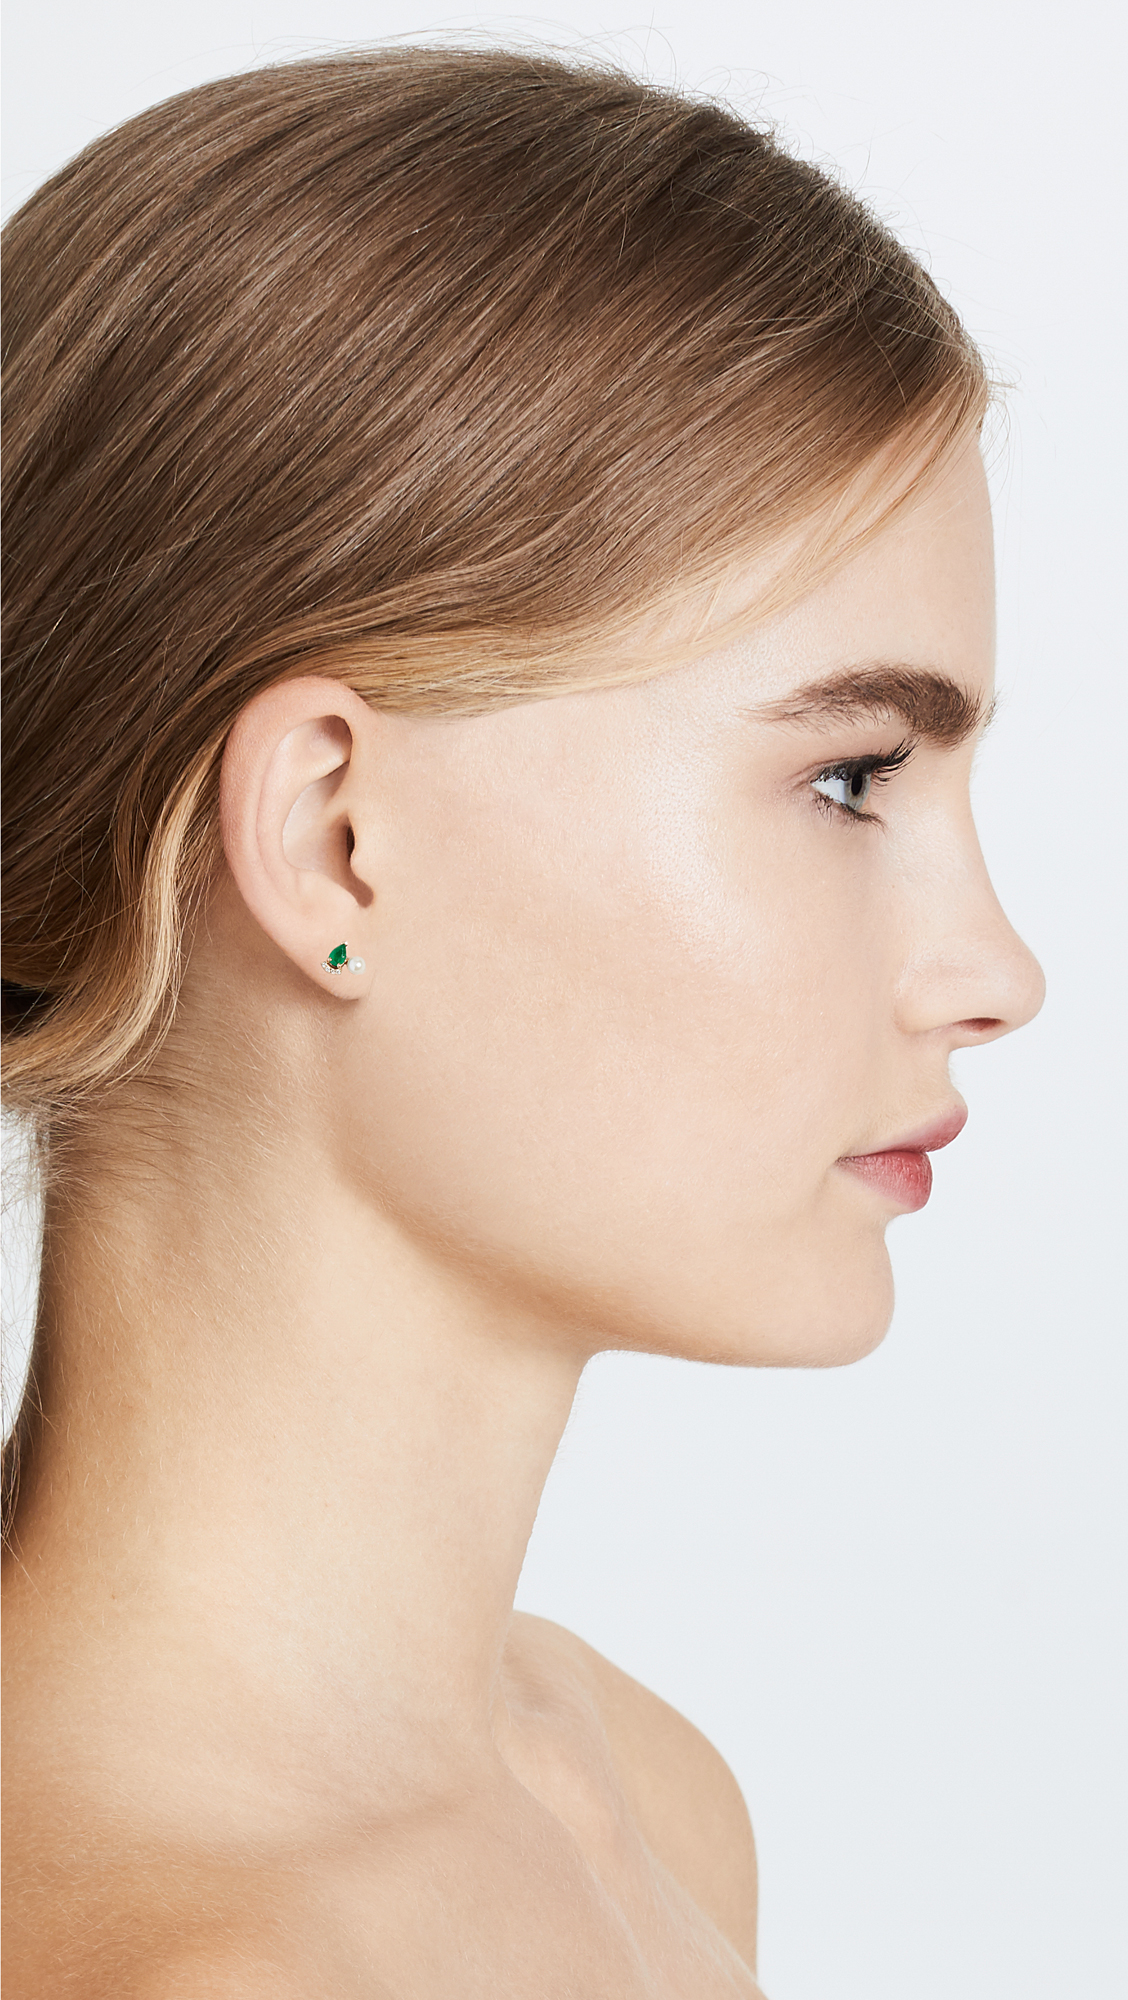 Paige Novick Diamond & Emerald 18k Earrings with Cultured Freshwater Pearl XdUjj1E